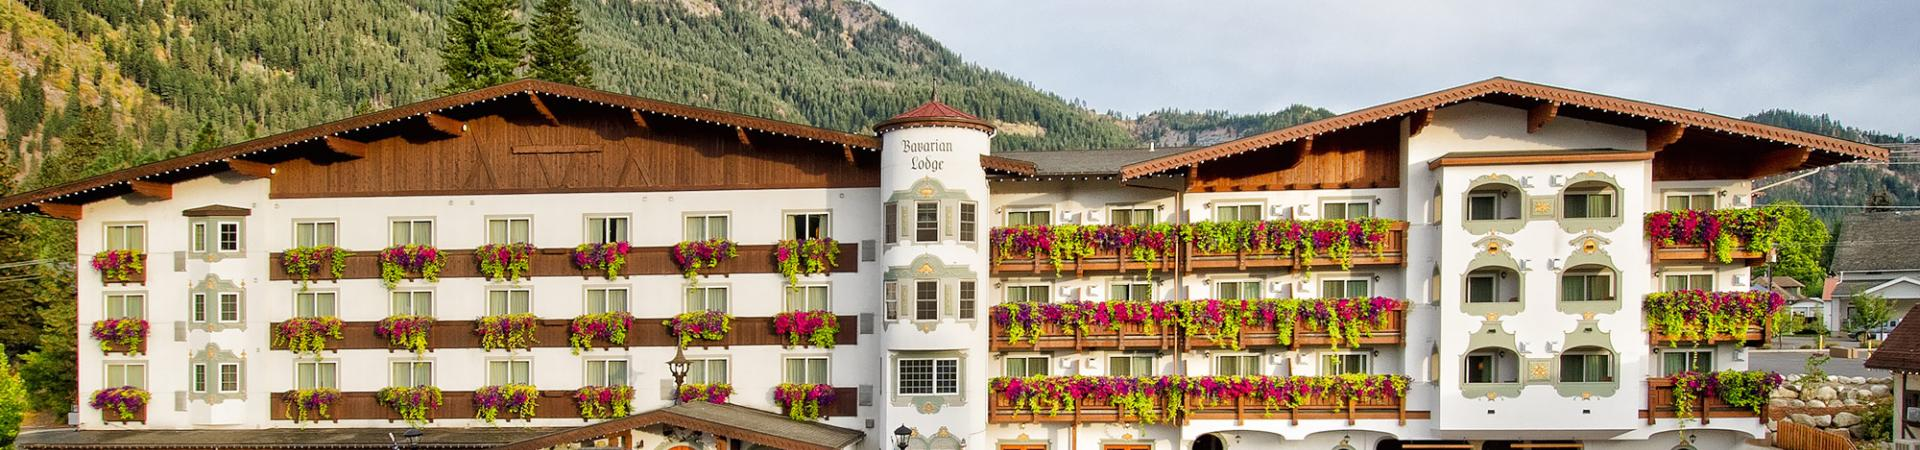 Bavarian Lodge in Leavenworth Washington